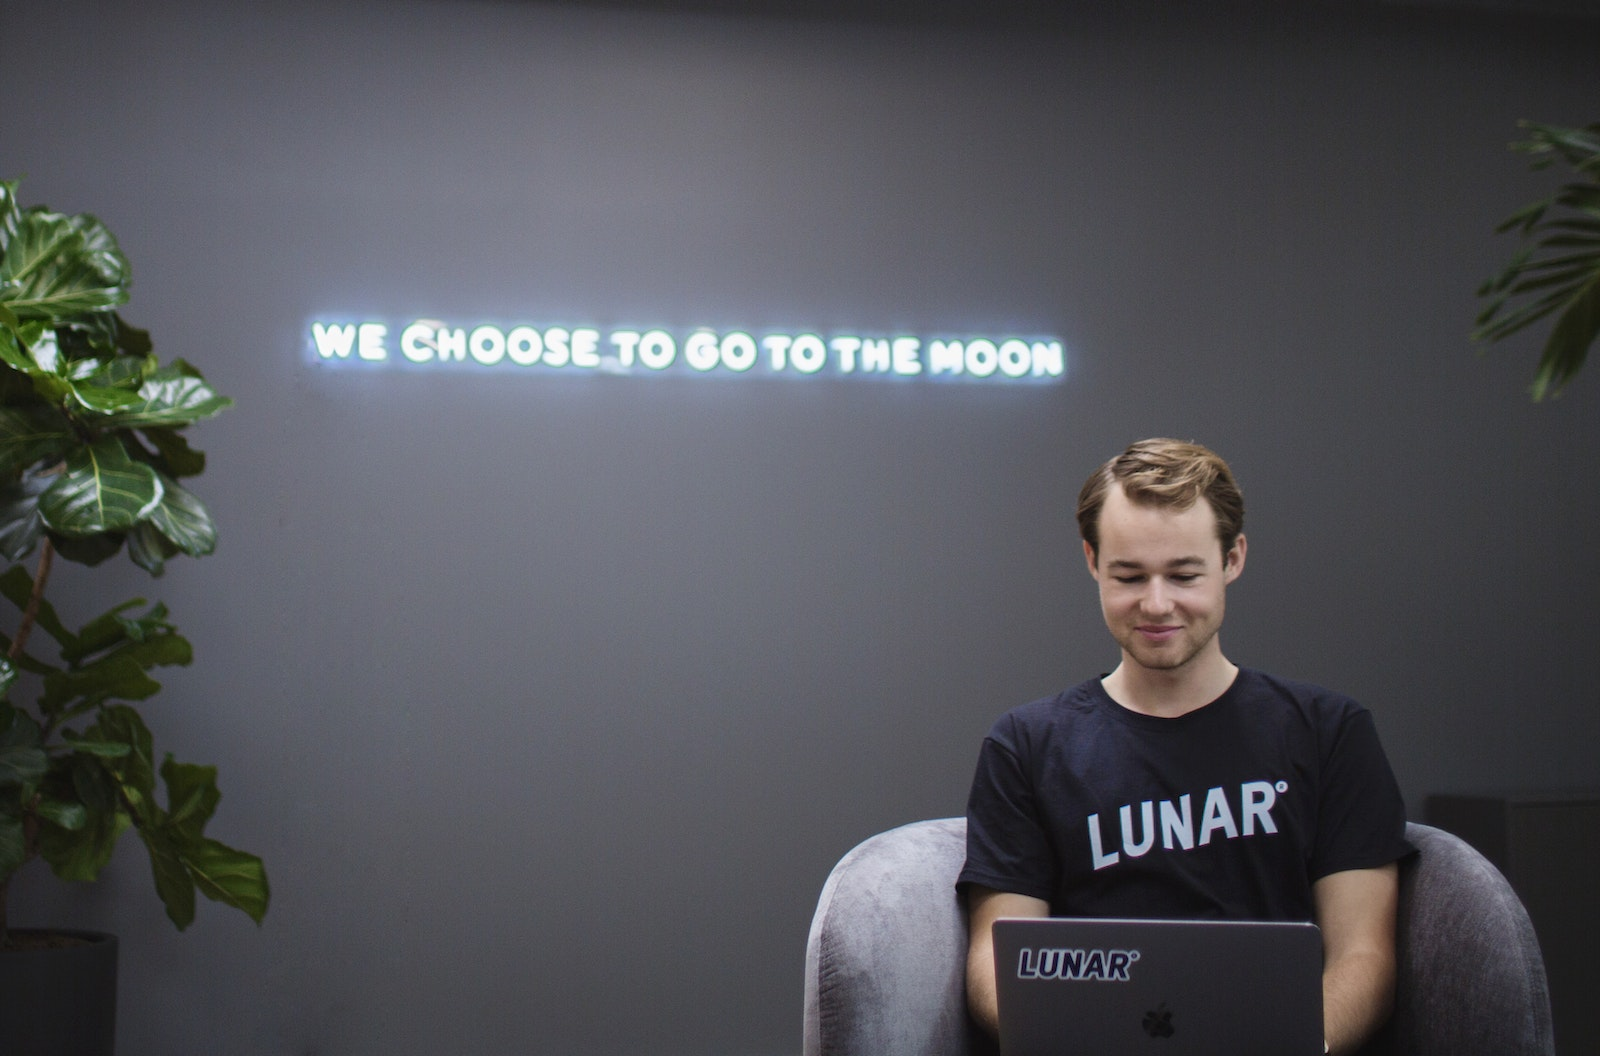 Neon art installations at Lunar's new Copenhagen based office